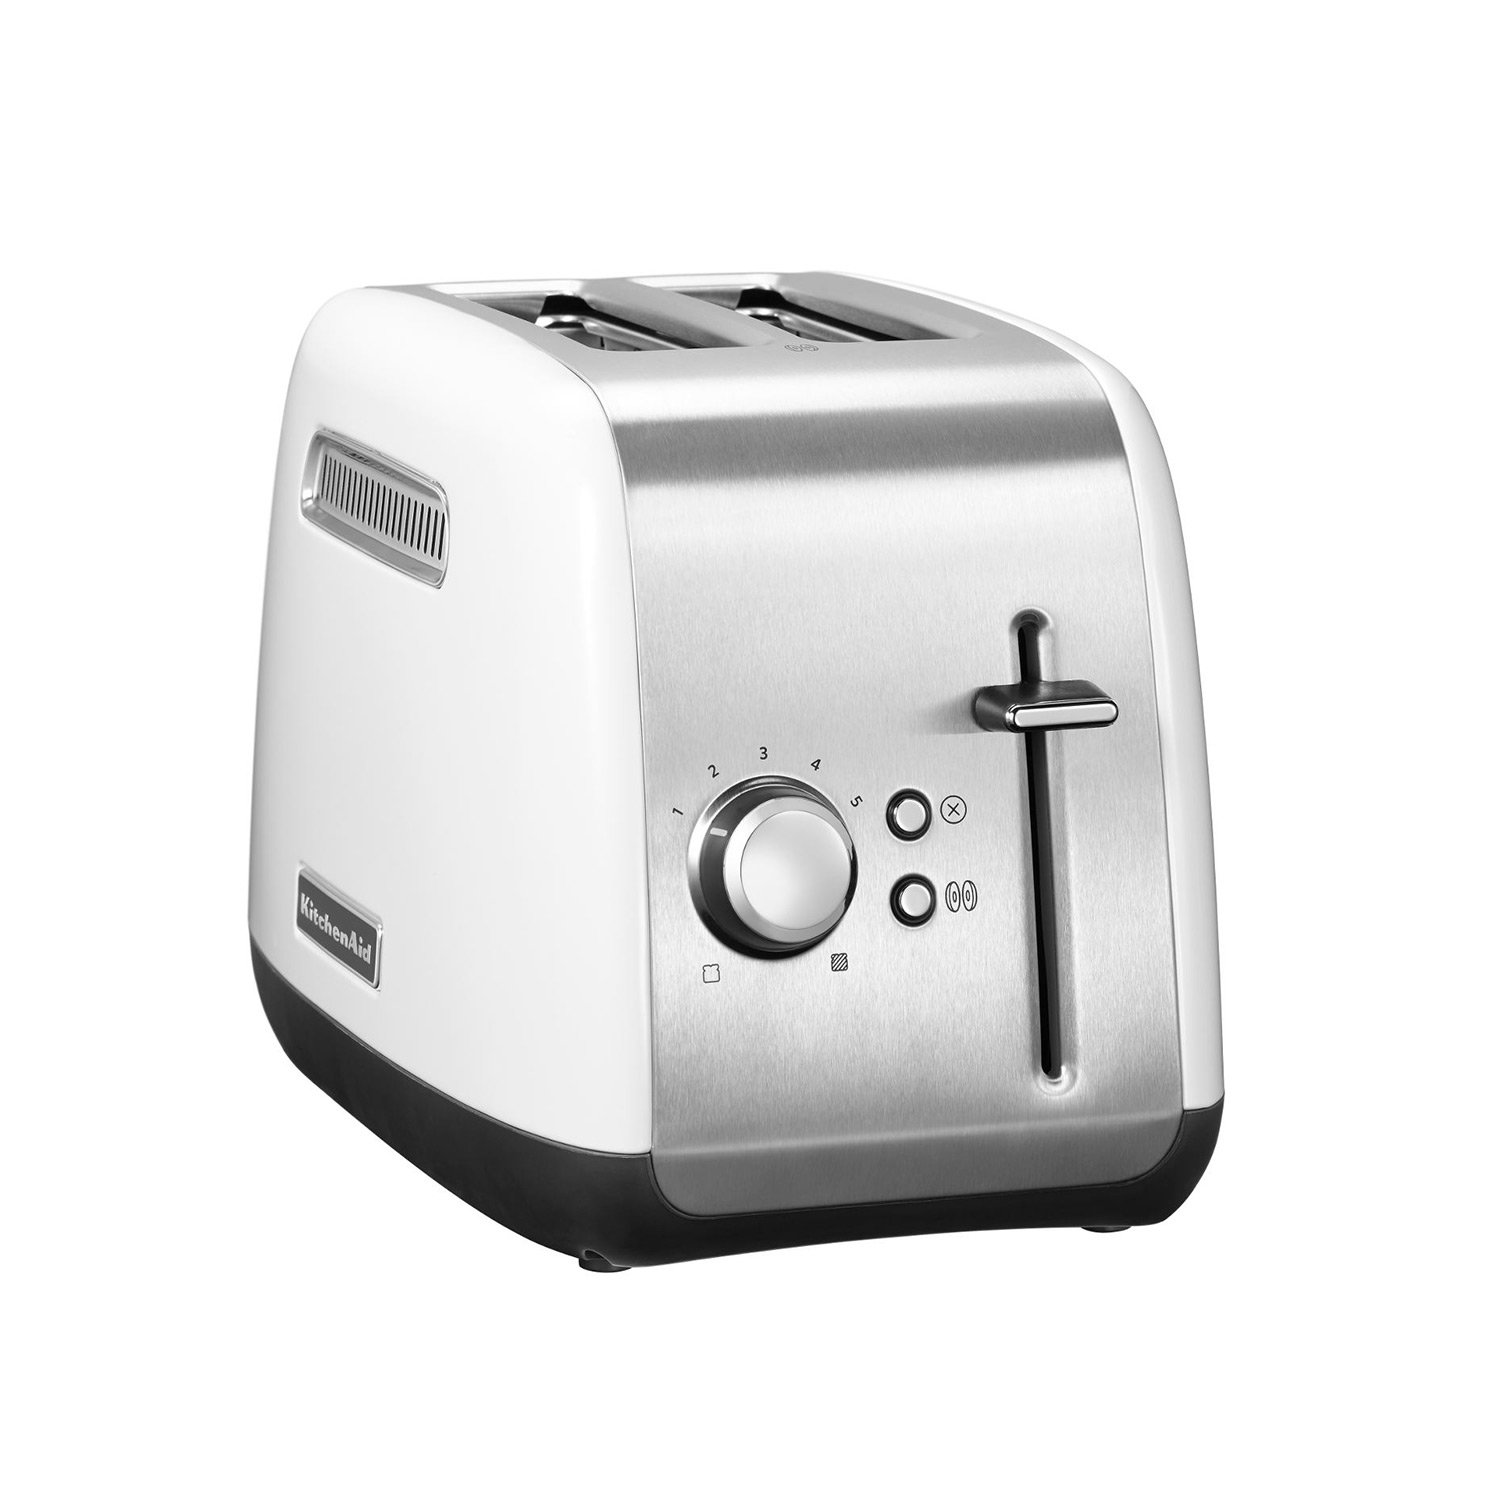 KitchenAid 5KMT2115BWH Toaster